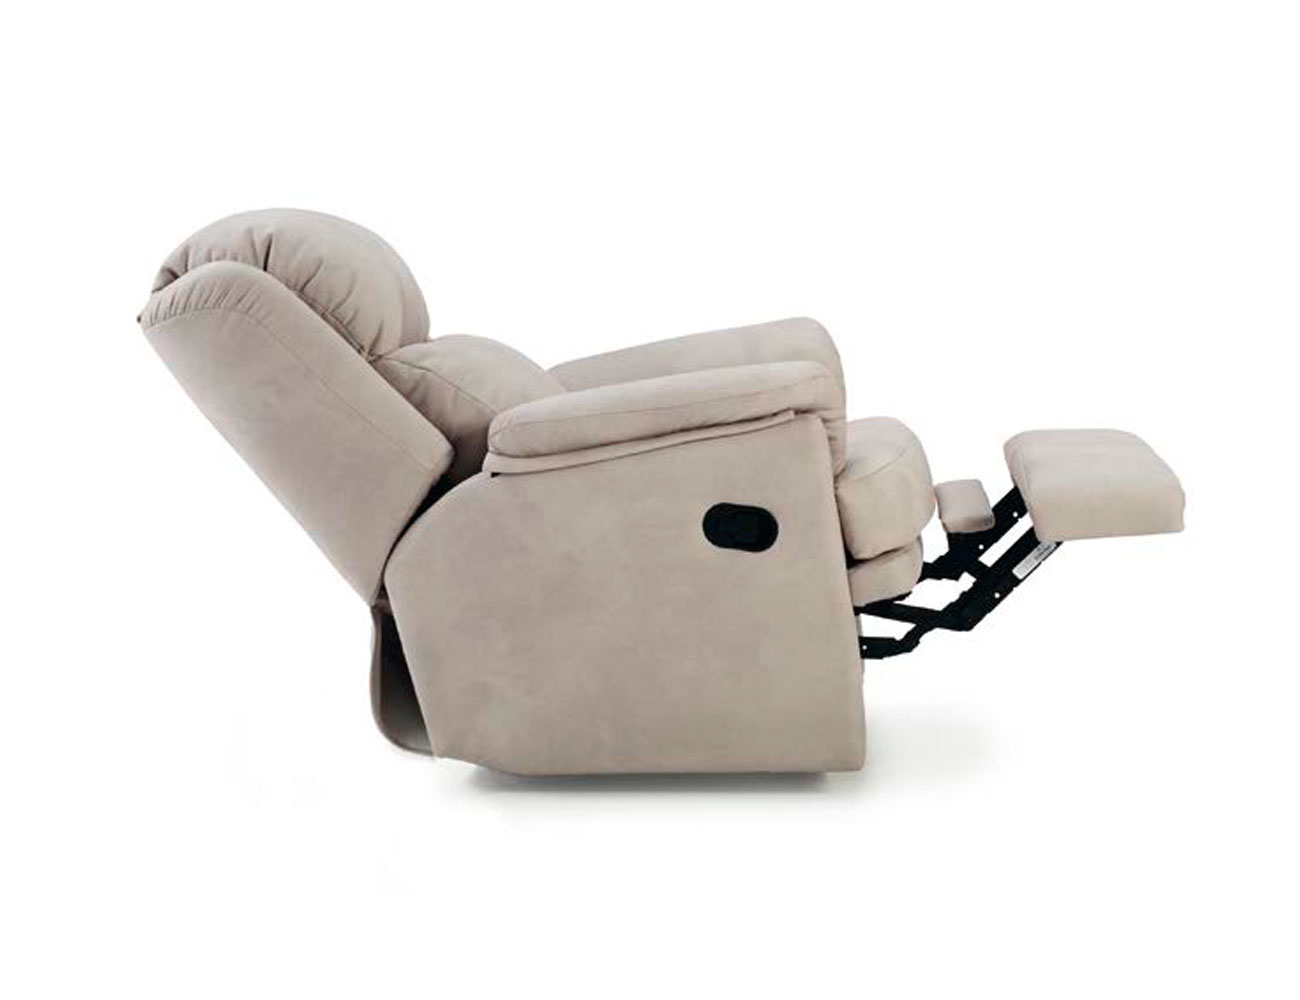 Sillon relax manual palanca esther 126